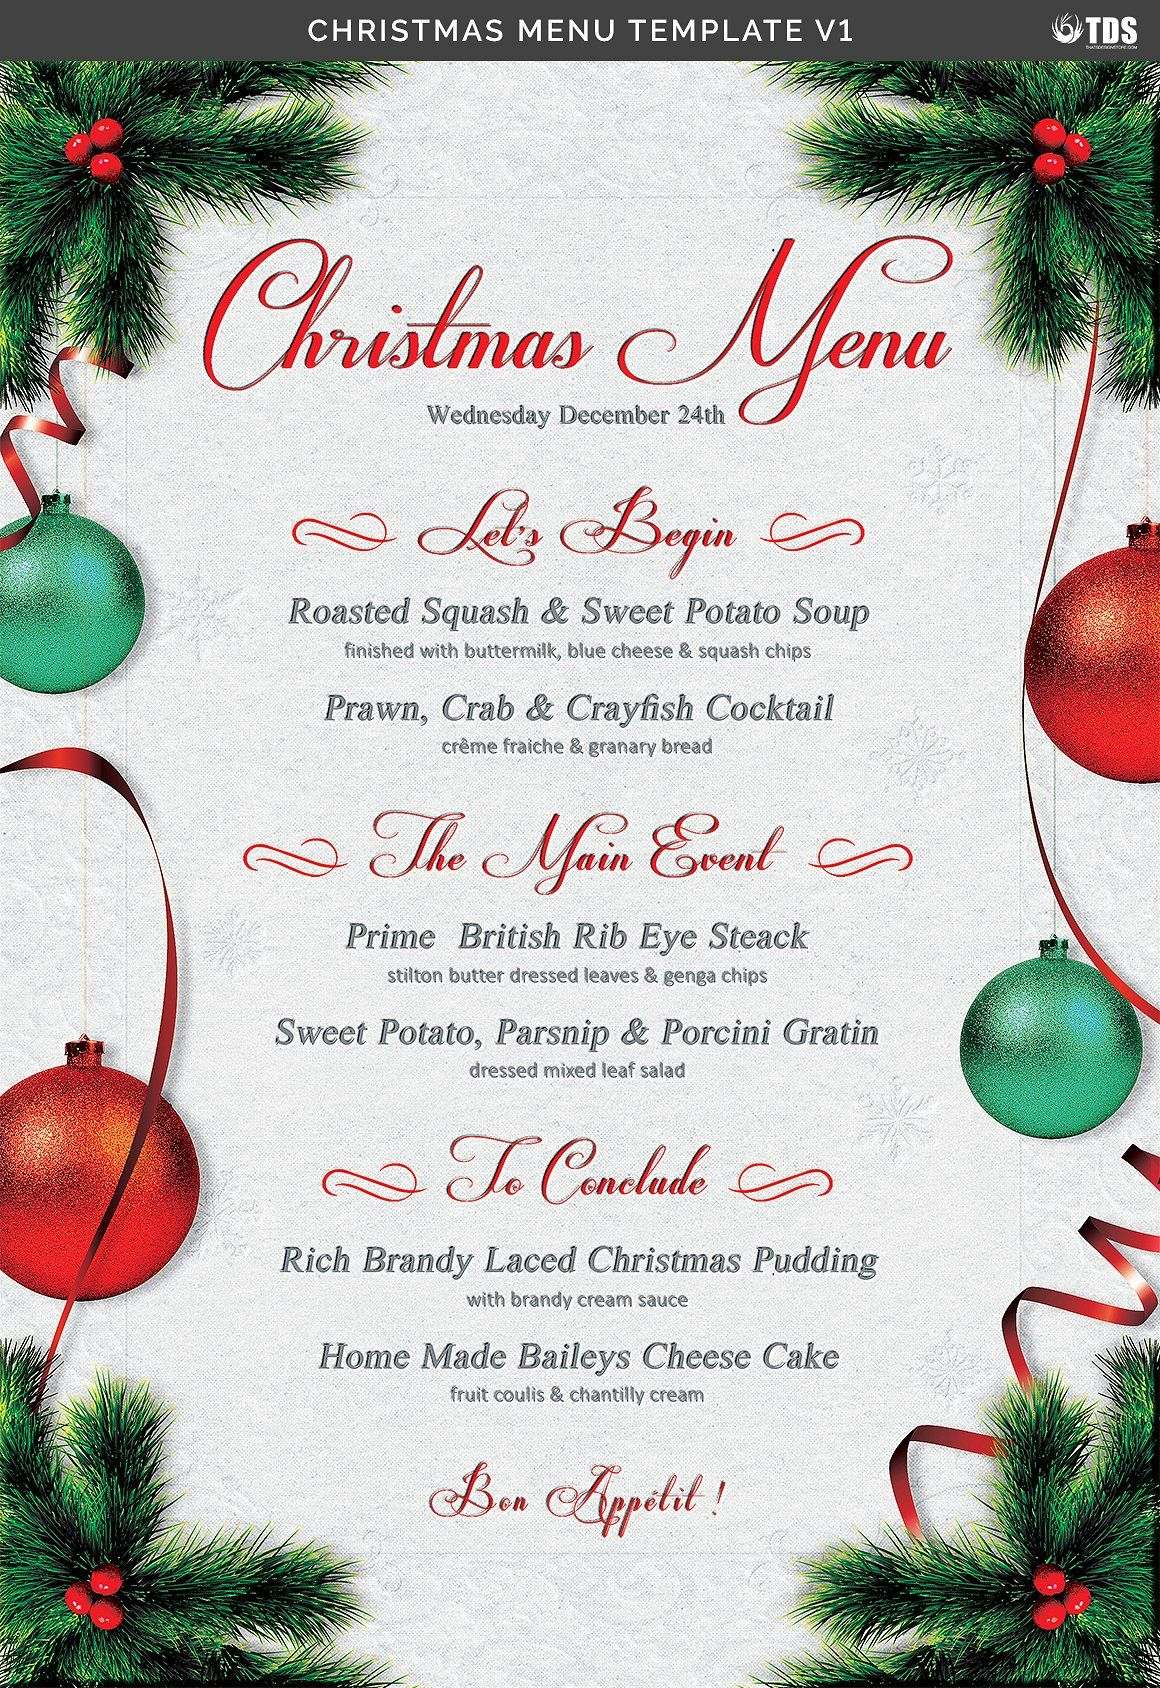 Christmas Menu Template V1 By Thats Design Store Ad Menu